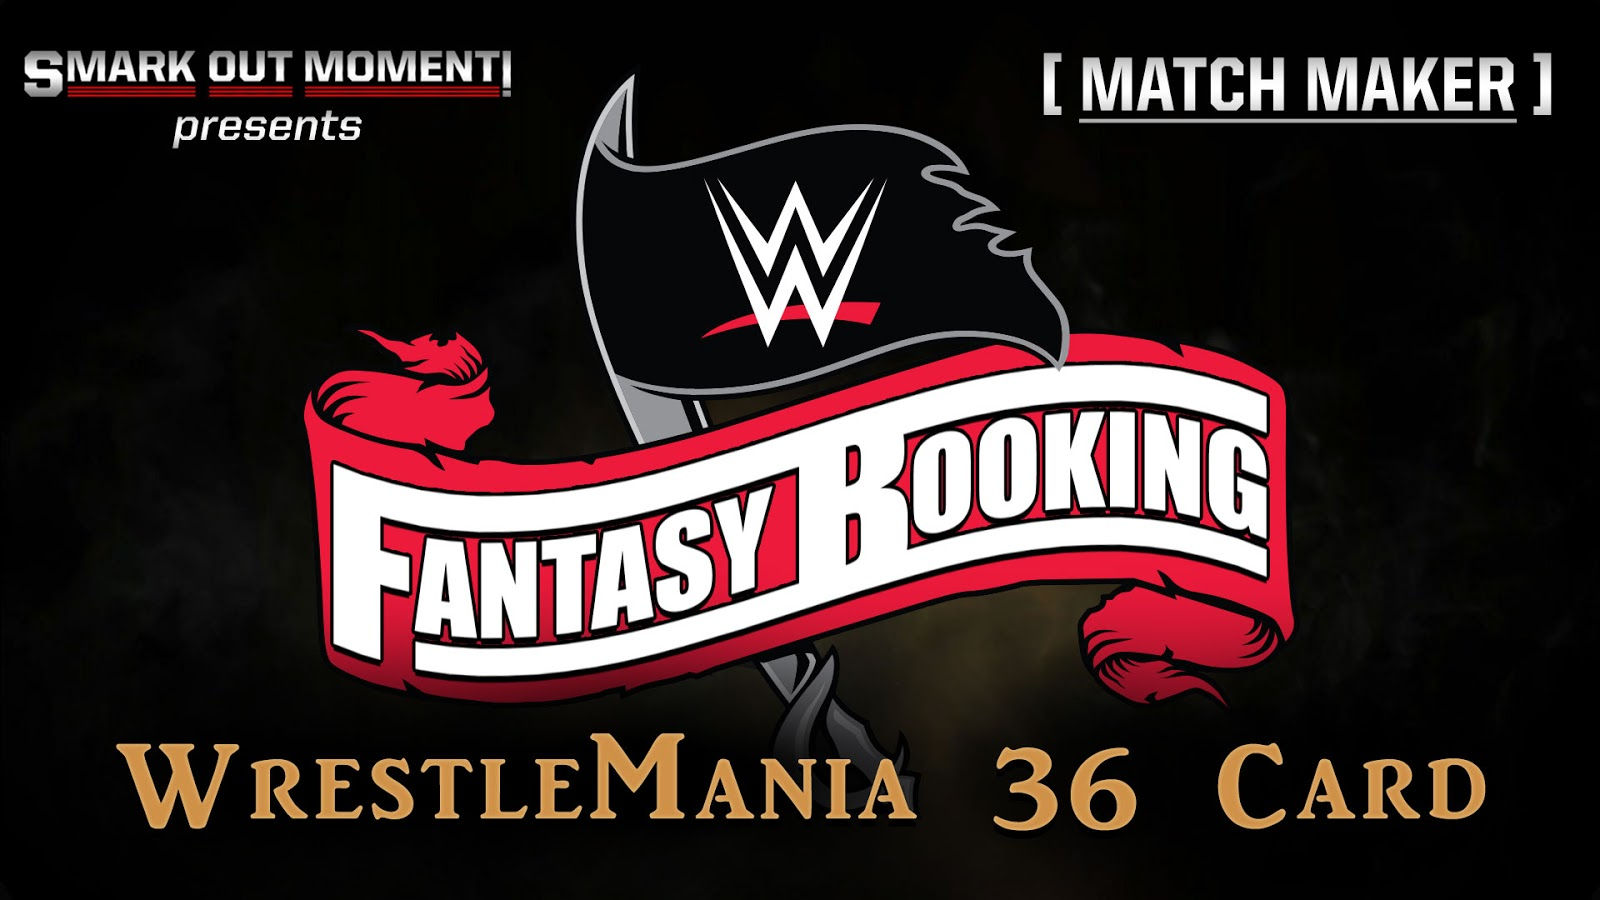 Fantasy Booking WrestleMania 36 Matches Lineup